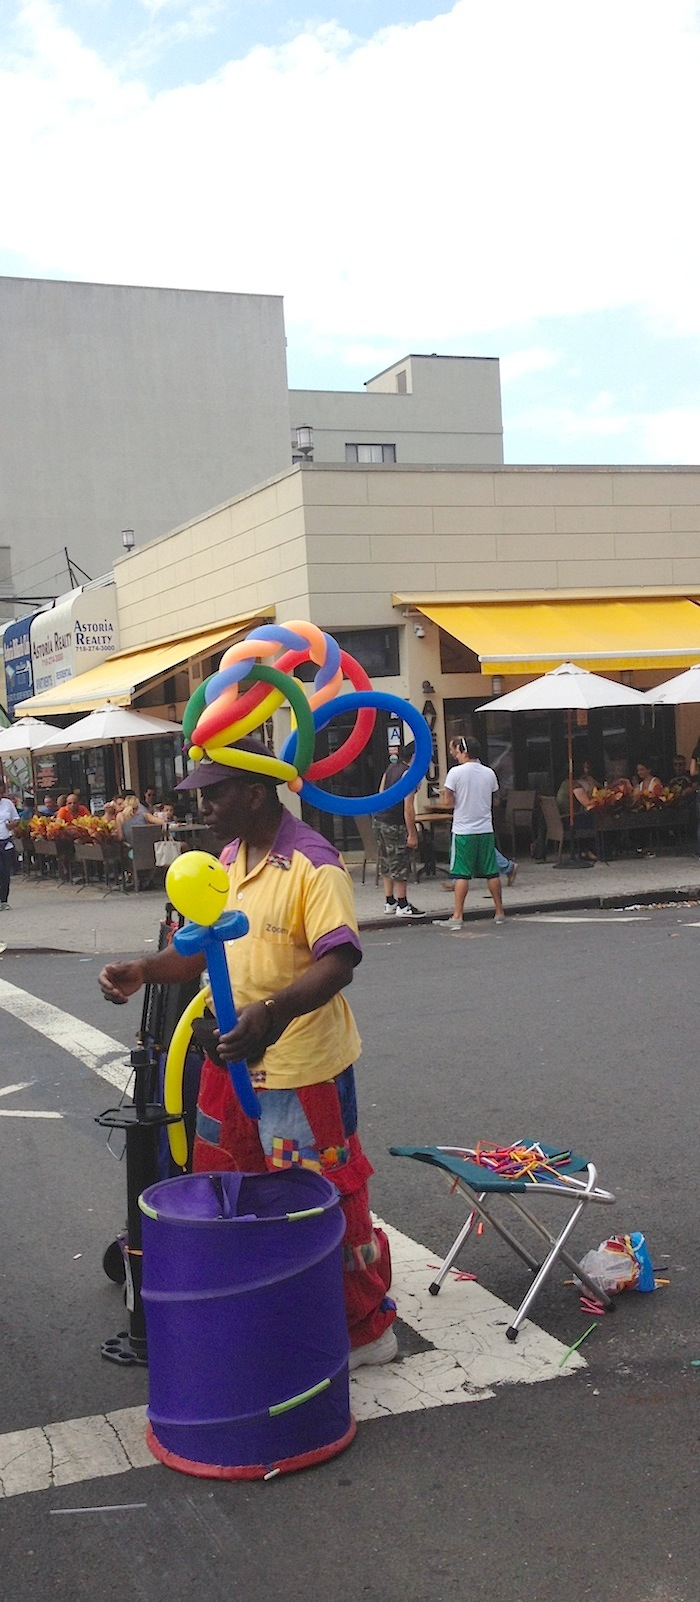 balloon-guy-30th-avenue-street-fair-september-1-labor-day-astoria-queens